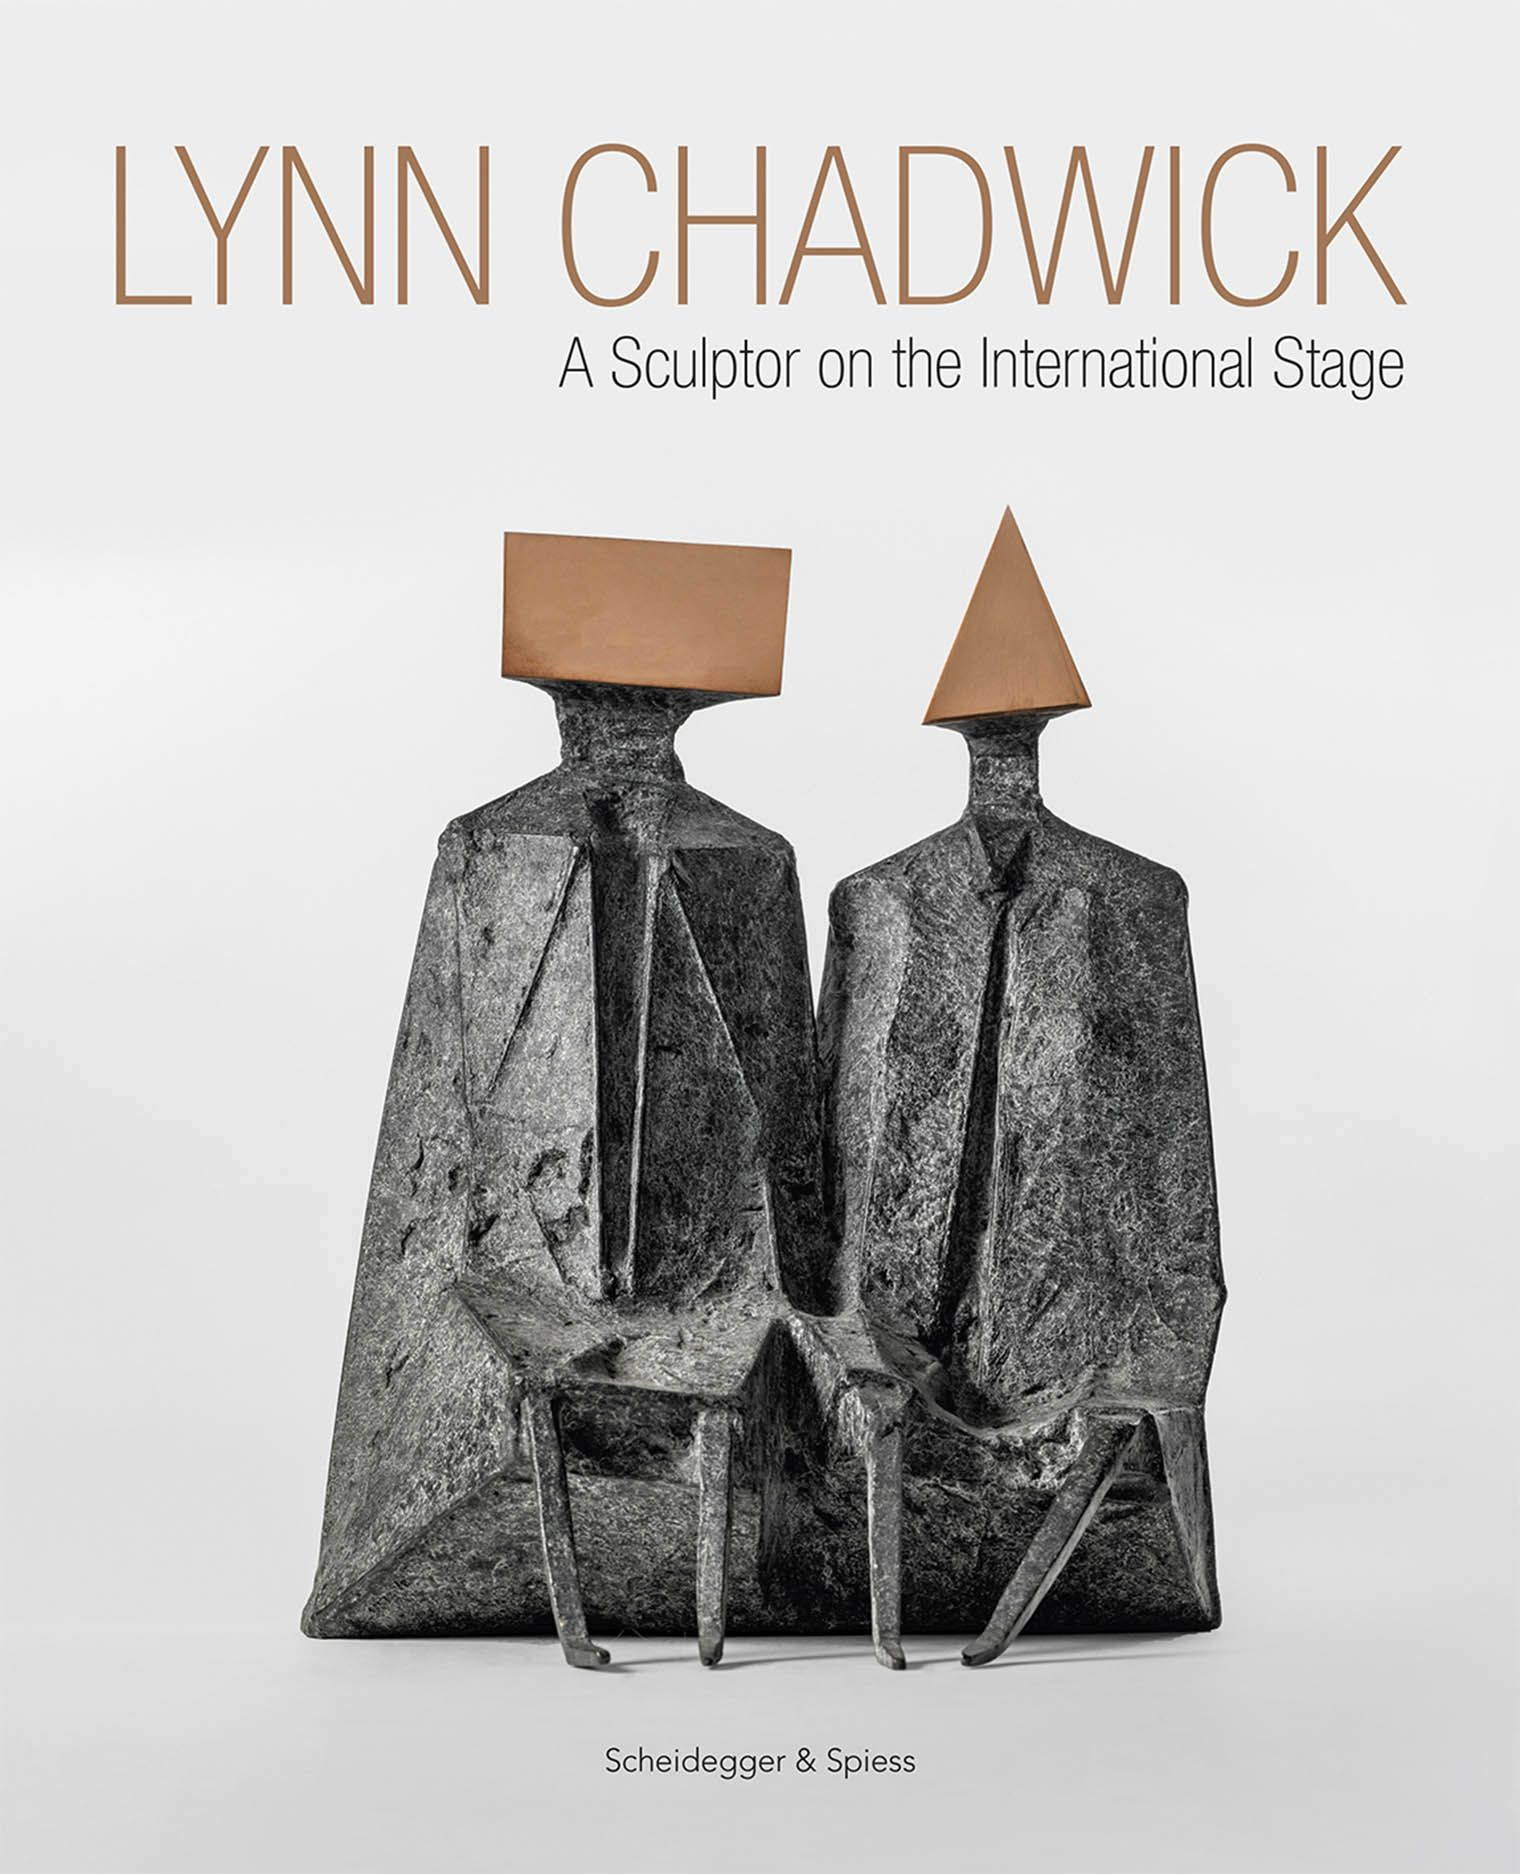 Lynn Chadwick: A Sculptor on the International Stage